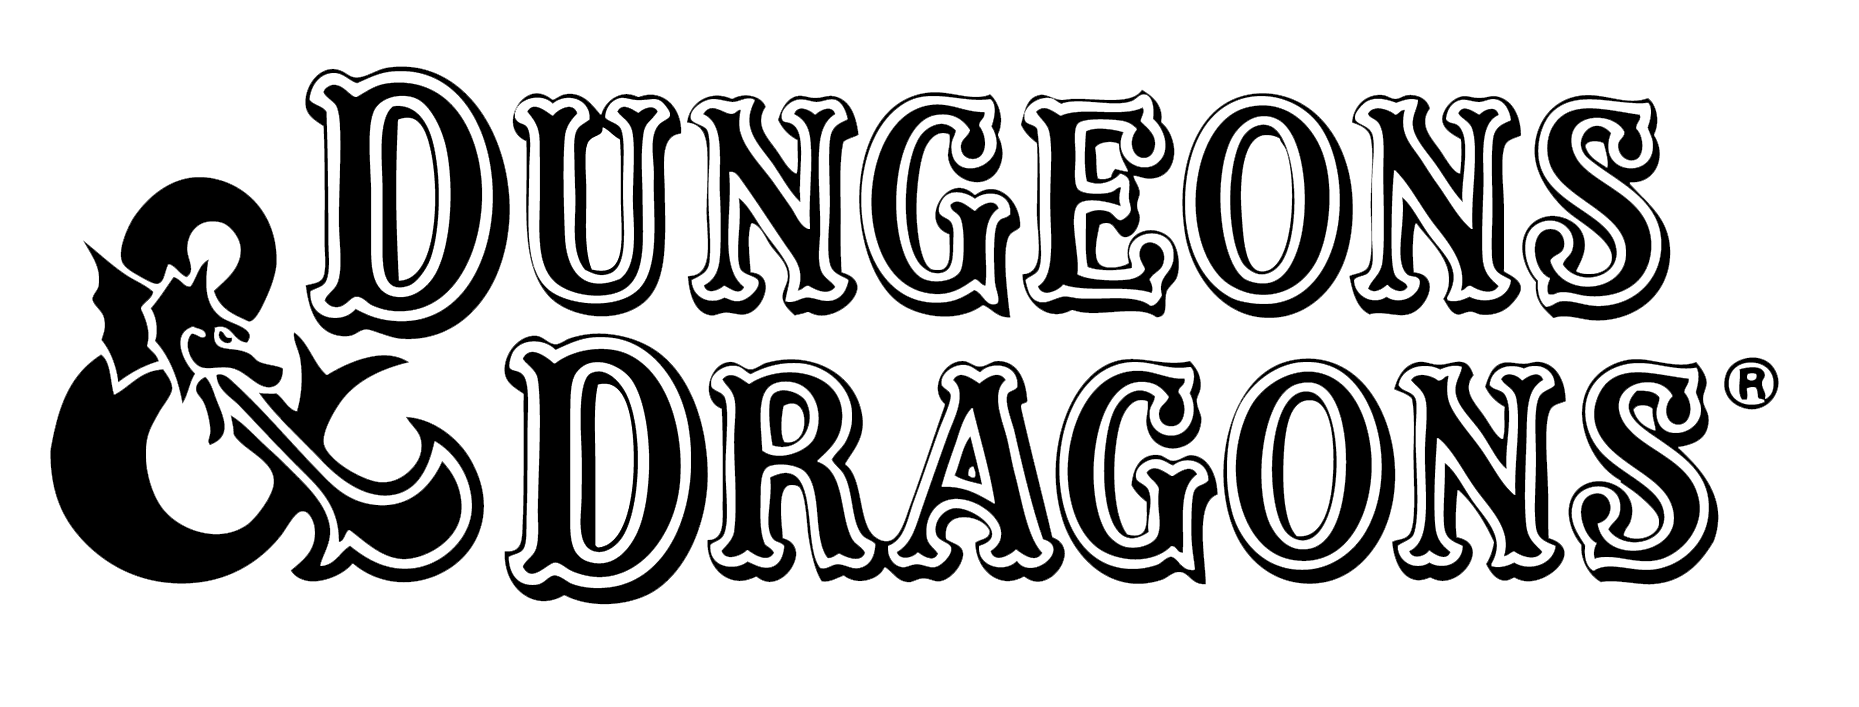 dungeons_n_dragons_logo_old_3_by_banesbo